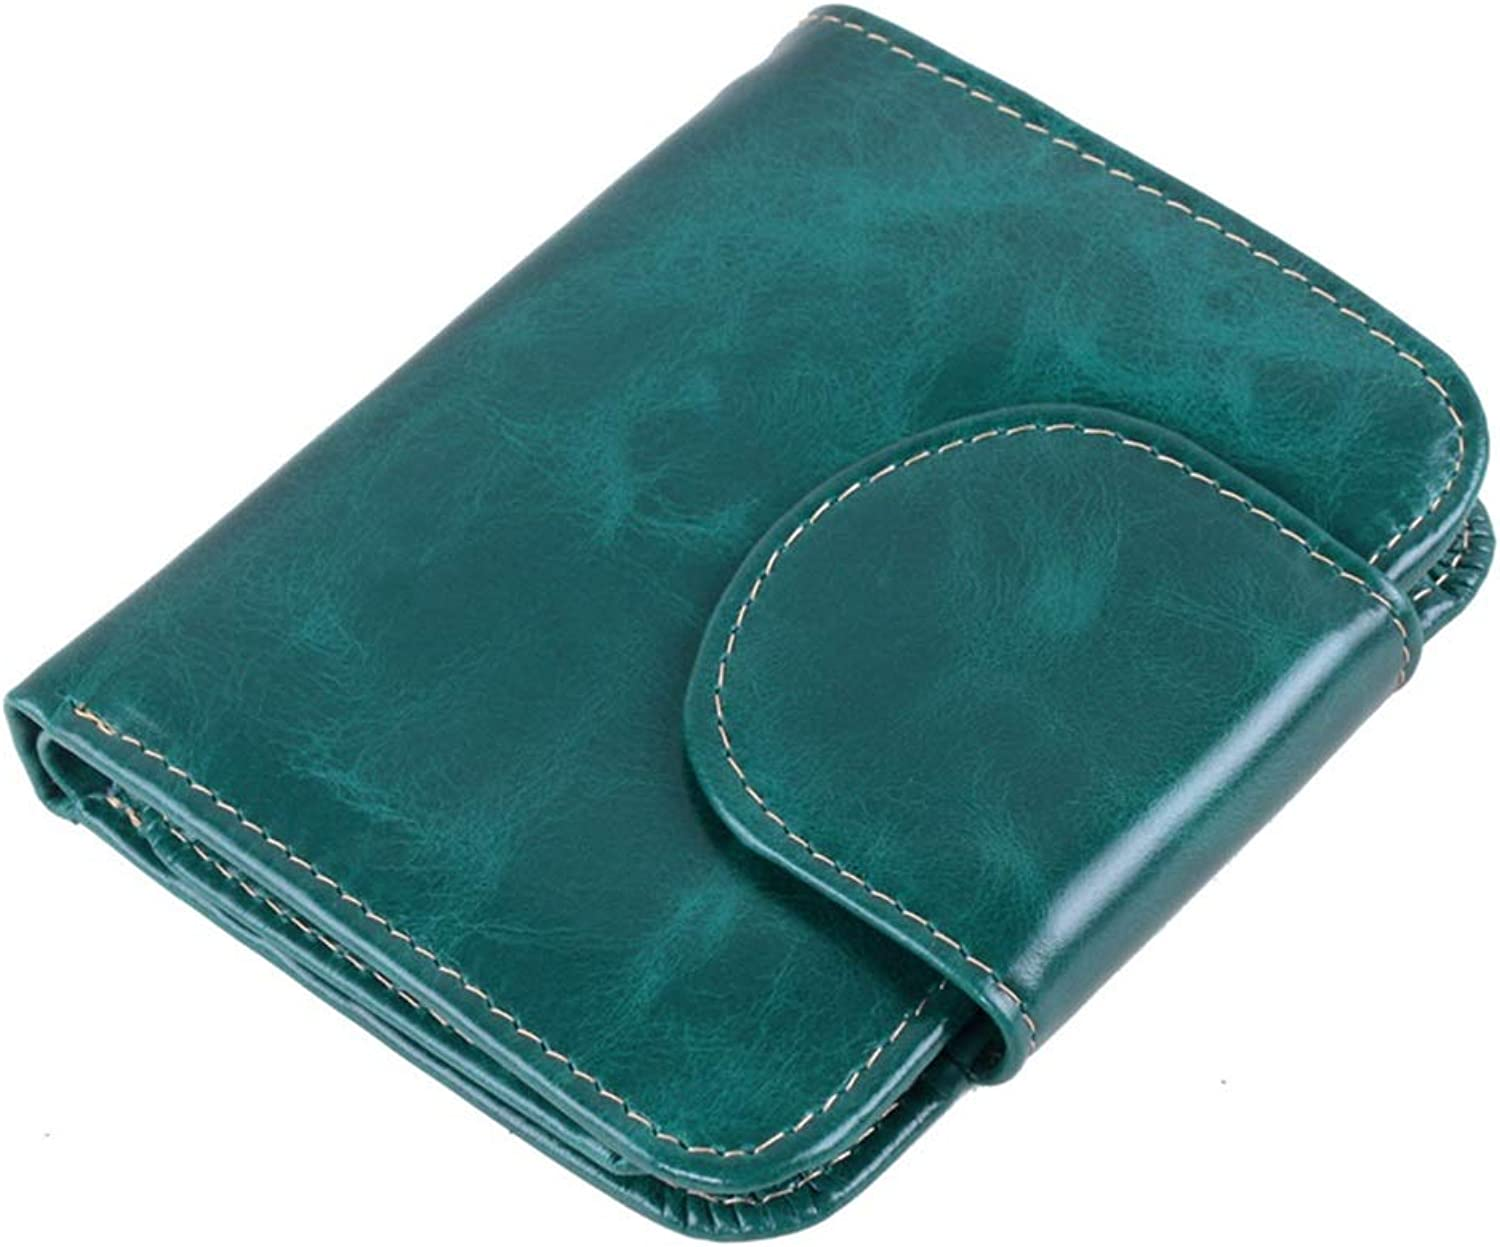 Womens Blocking Large Capacity Wallet Women's Wallet Leather Short Paragraph Retro Buckle Wallet Credit Card Wallet Leather Wallet Leather Clutch Wallet Multi Card Organizer (color   Green)